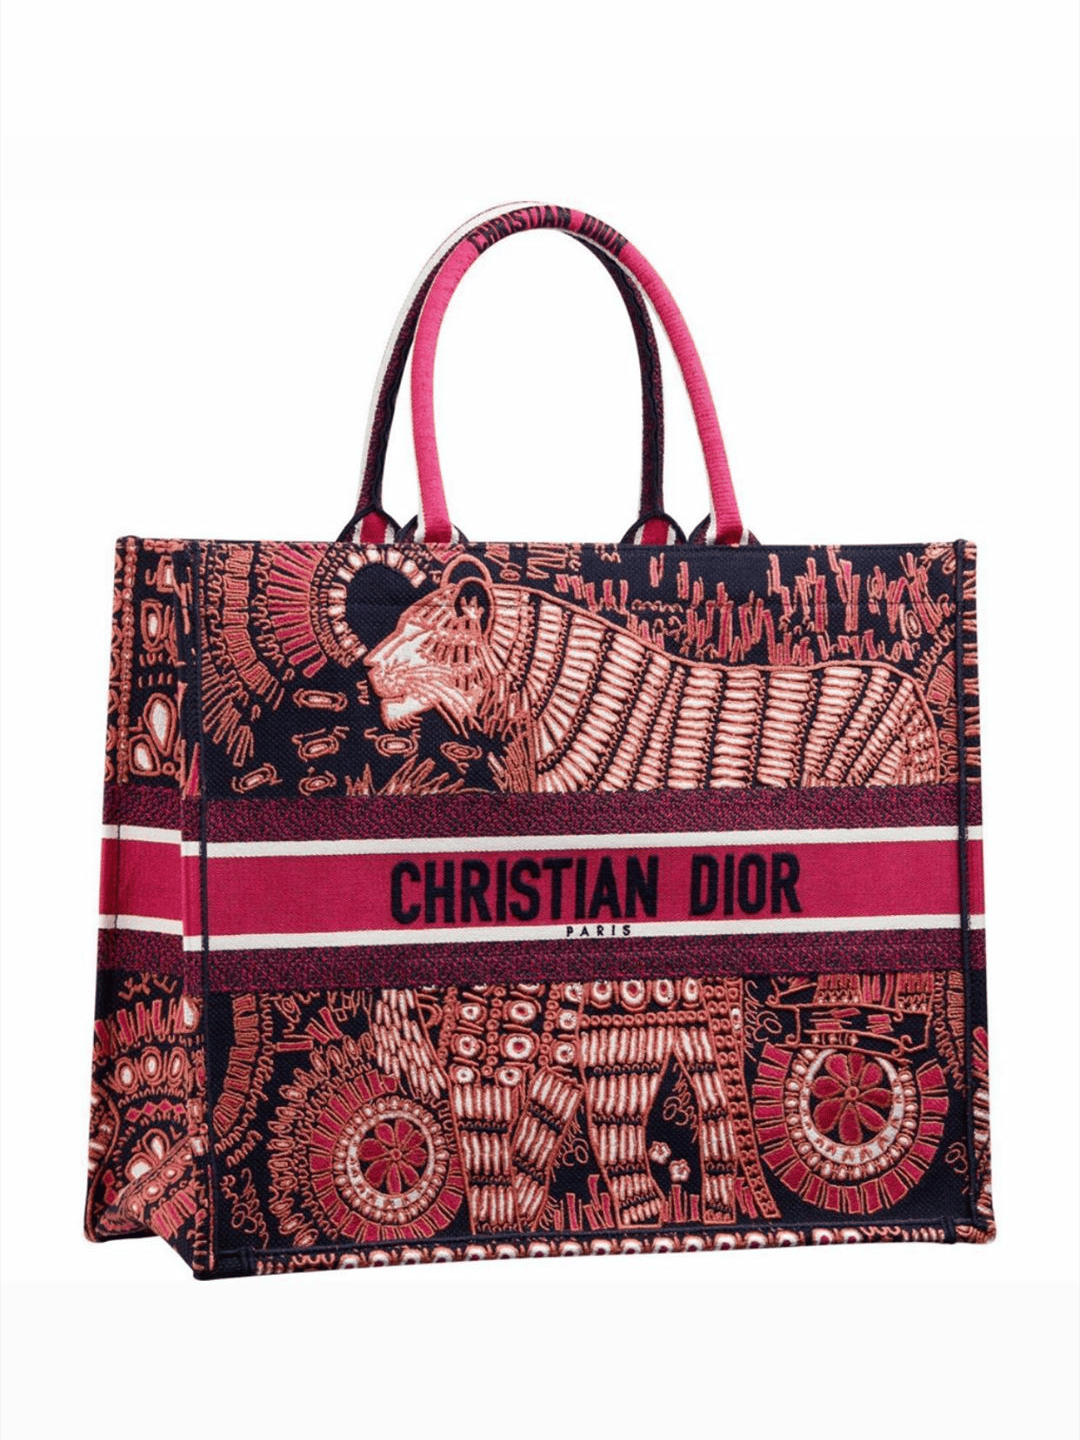 Dior Bag Price List Reference Guide